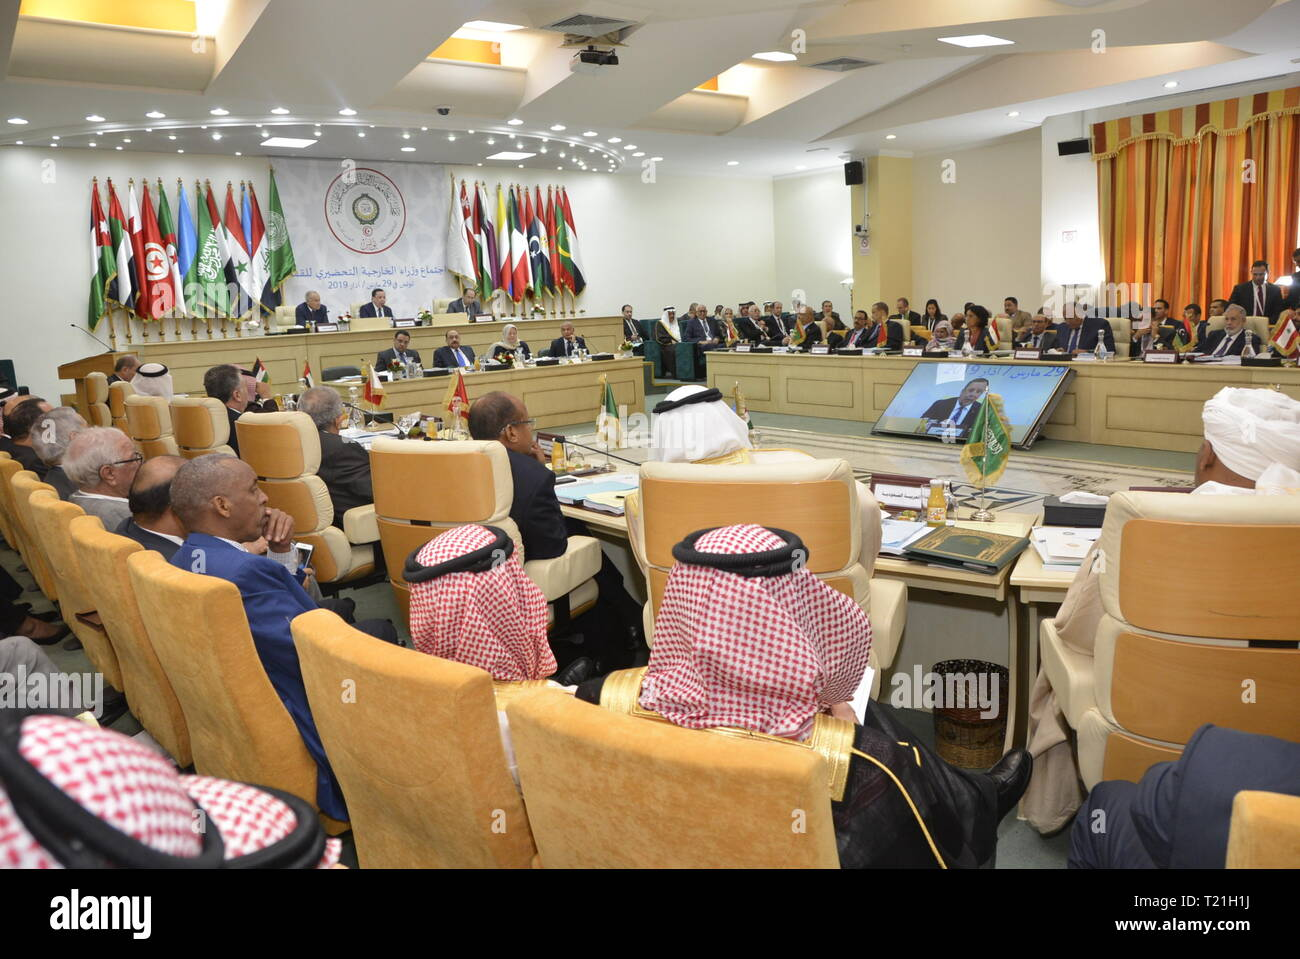 Tunis. 29th Mar, 2019. Photo taken on March 29, 2019 shows the Arab foreign ministers' preparatory meeting for the 30th Arab summit in Tunis, capital of Tunisia. The preparatory meetings of the 30th Arab summit continued Friday in Tunis to consolidate joint Arab action. Credit: Adele Ezzine/Xinhua/Alamy Live News - Stock Image